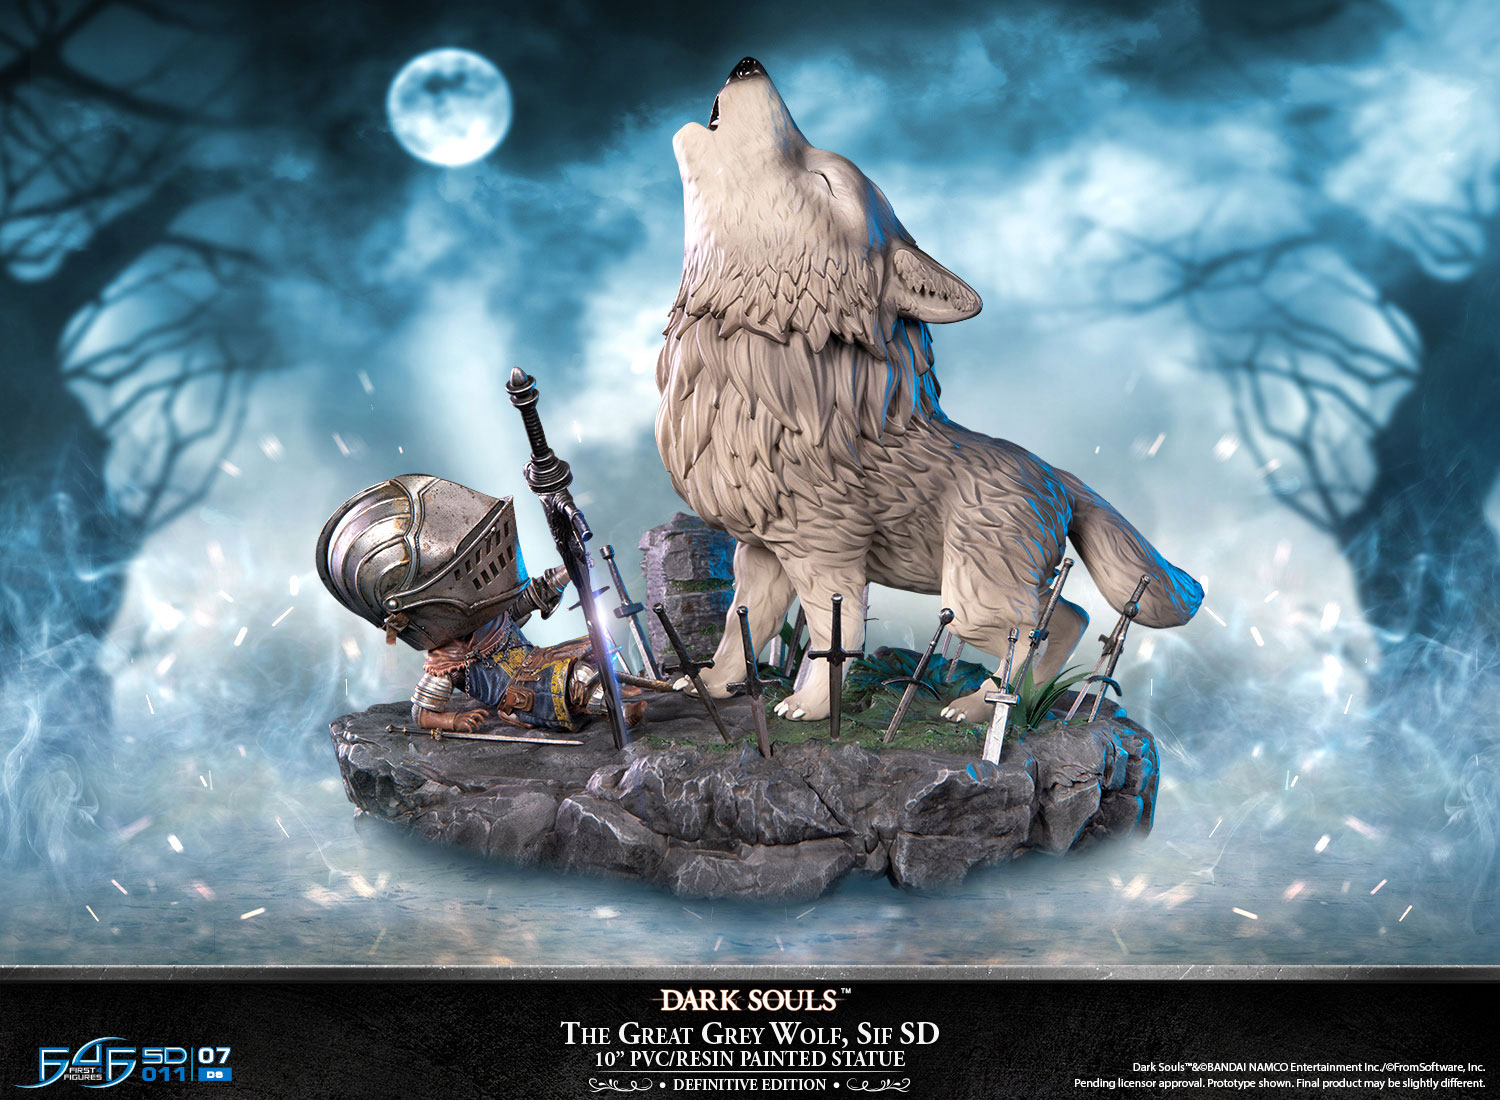 The Great Grey Wolf, Sif SD (Definitive Edition)